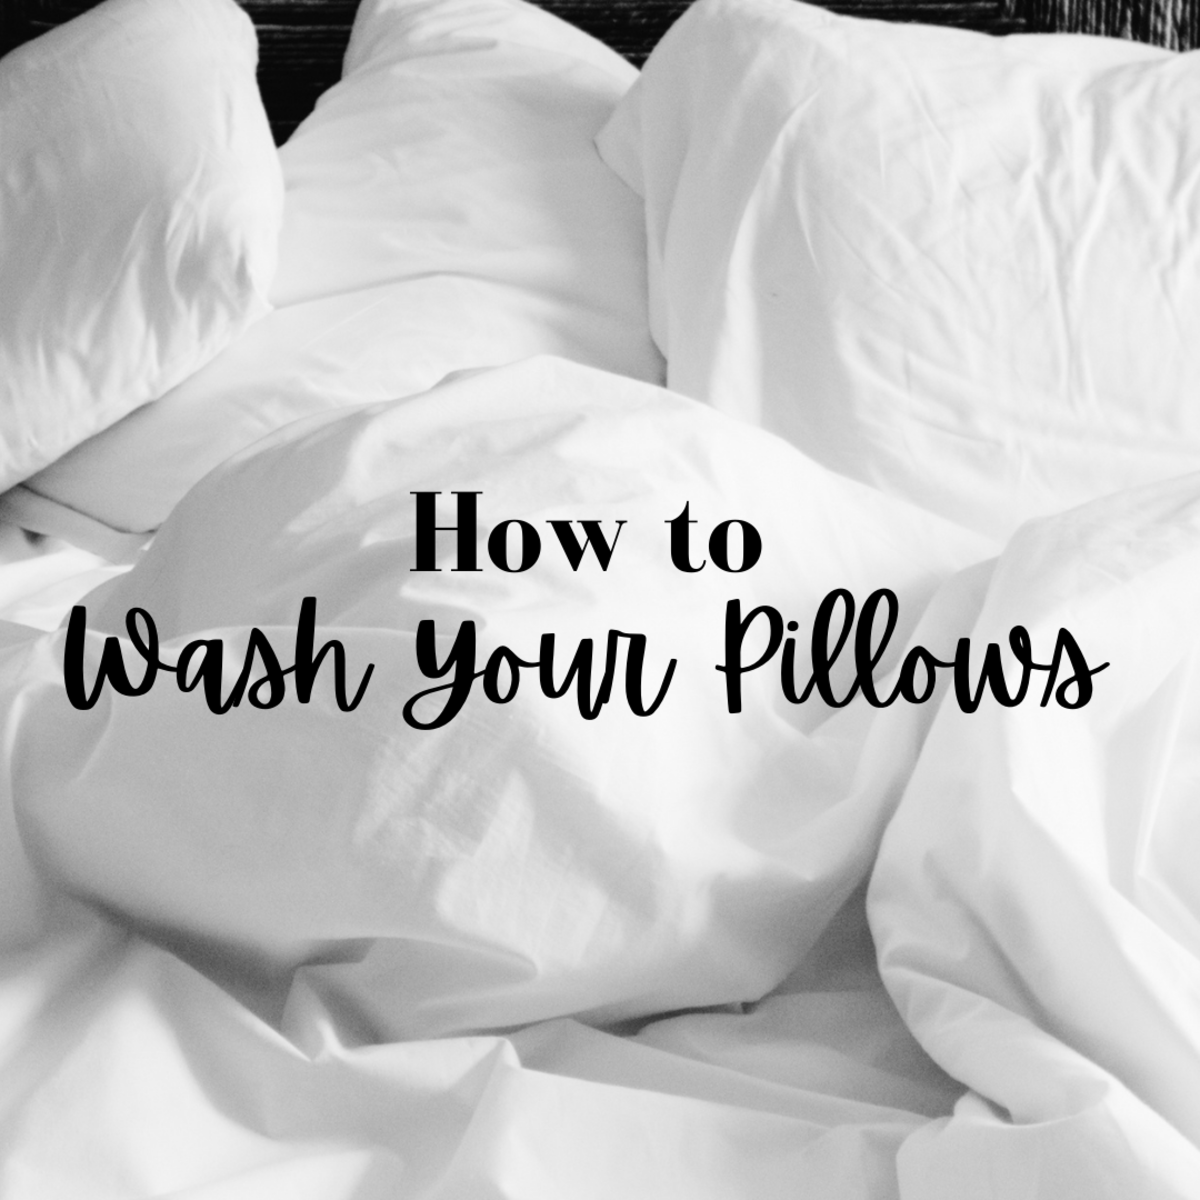 Can You Wash Pillows? Yep—Here's How